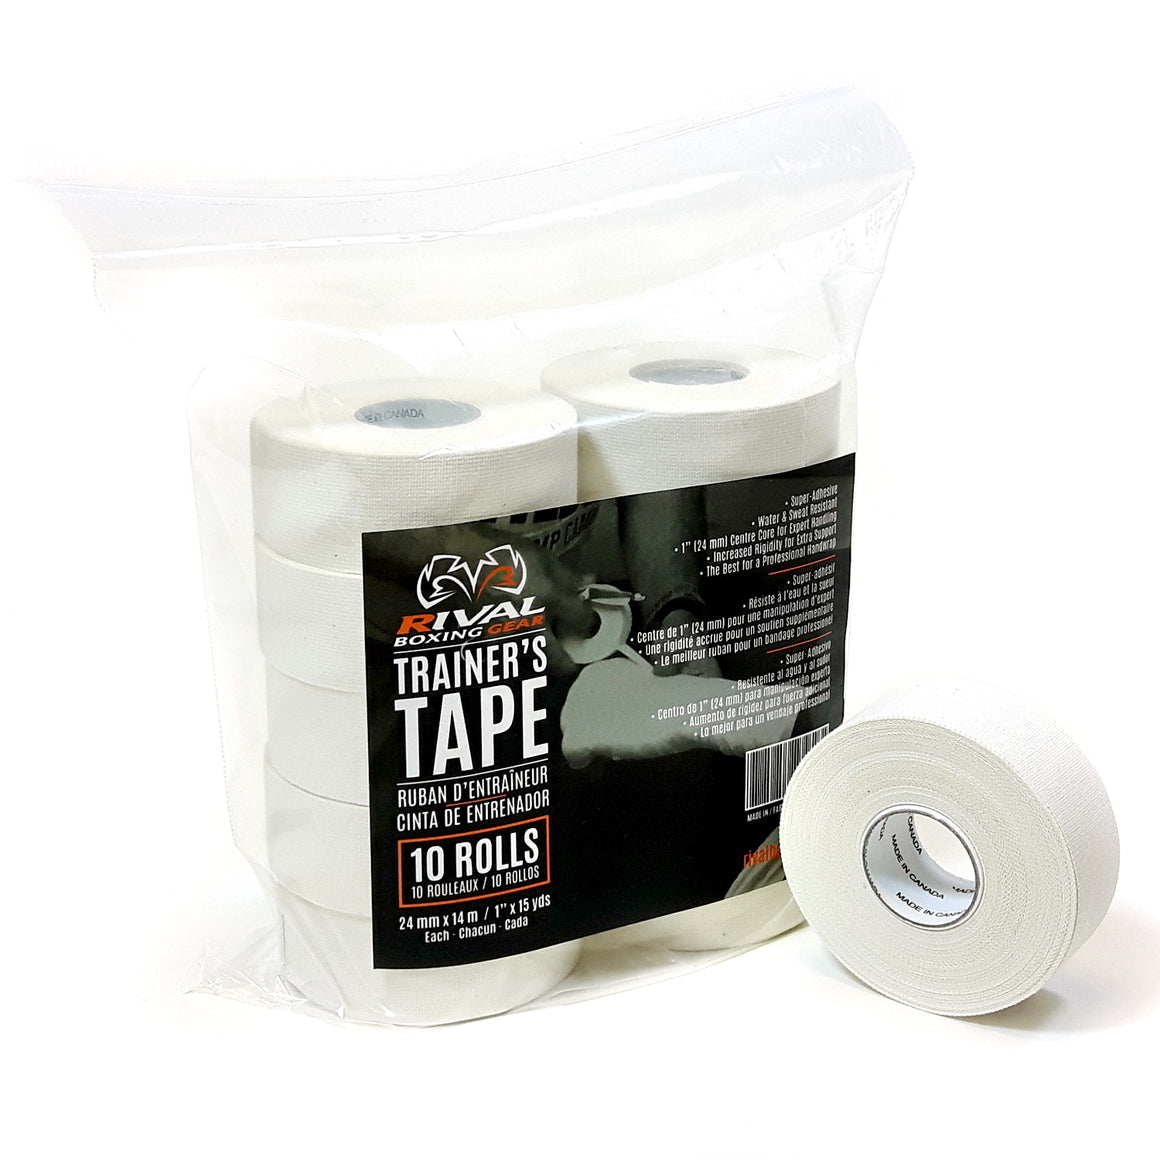 Rival Trainers Tape - Pack of 10 Rolls